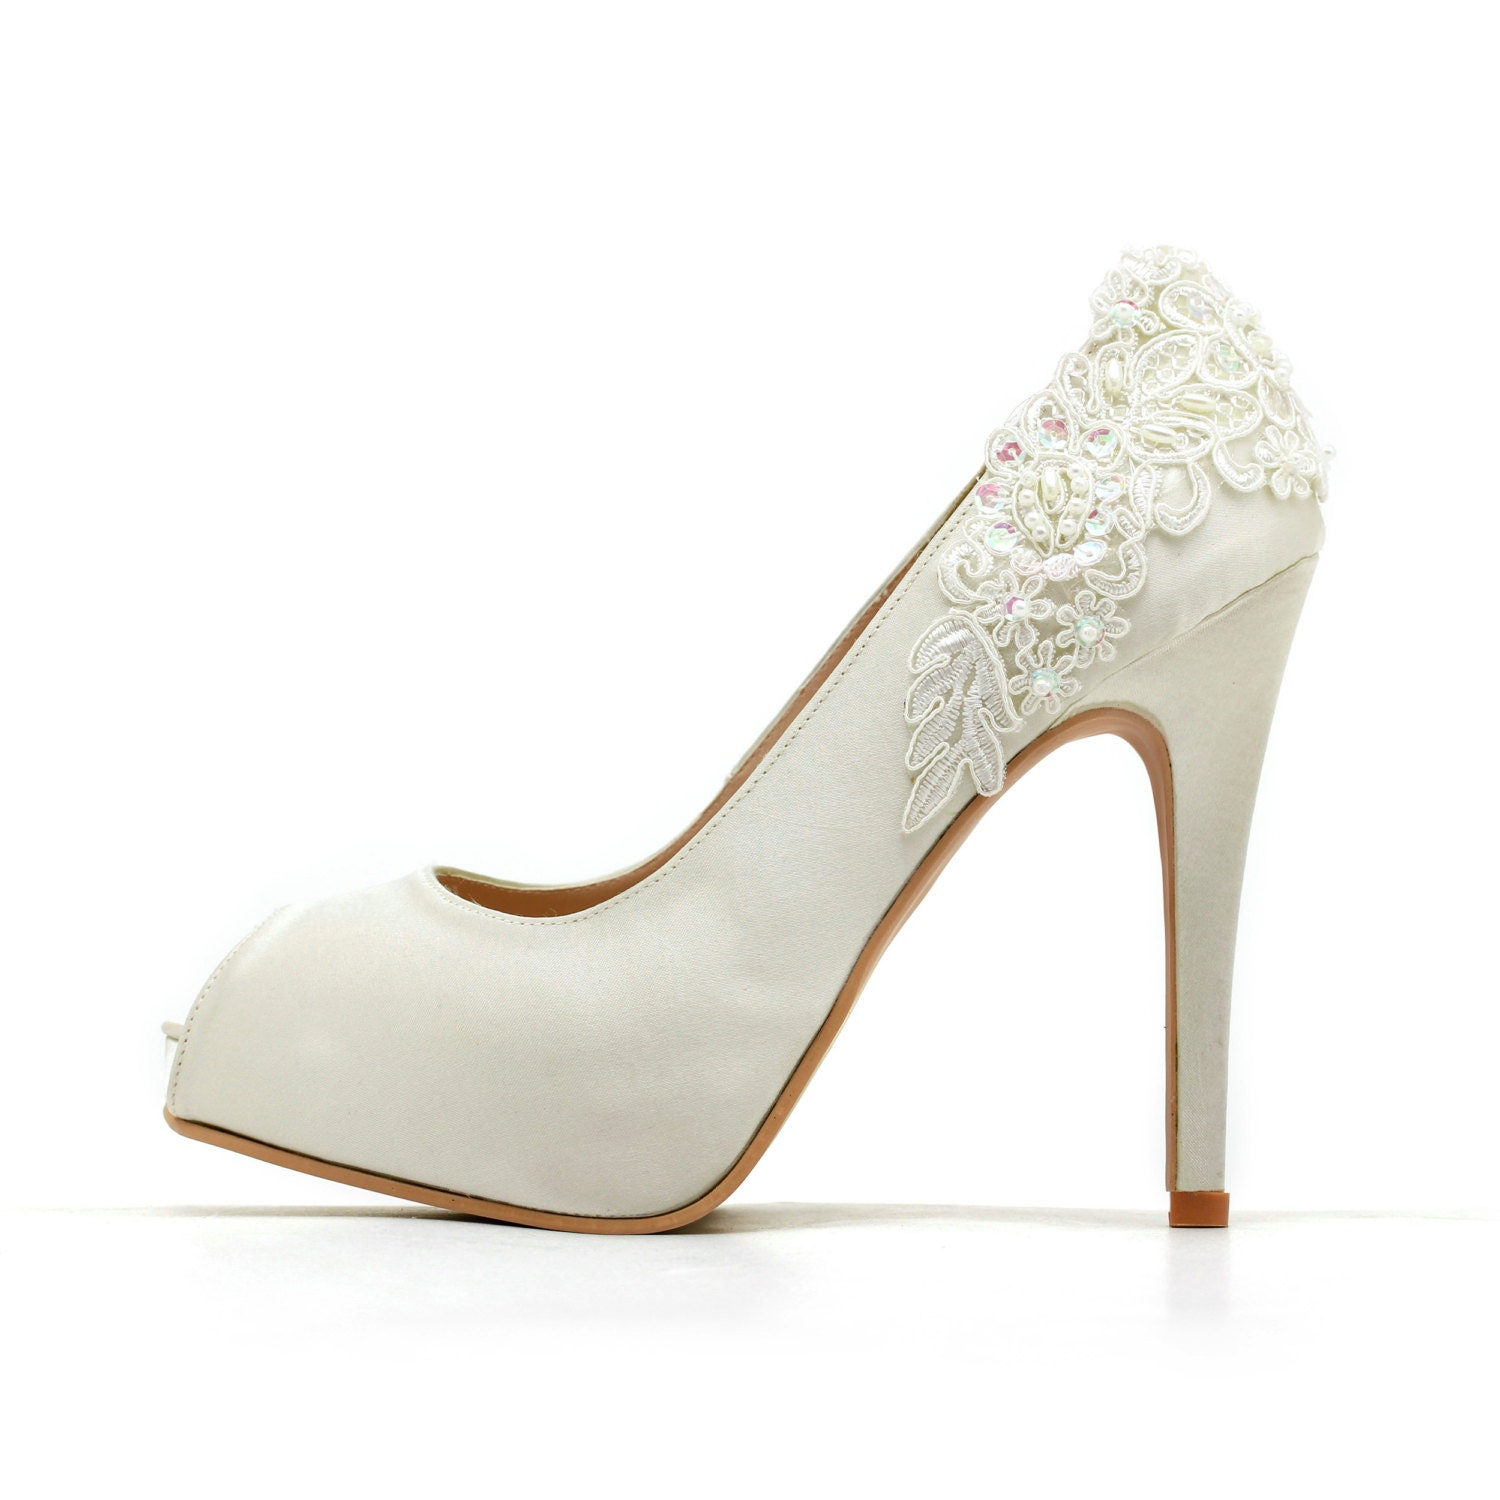 A great wedding calls for a great pair of heels! Find pretty heels for bridesmaids, wedding guests, or even the bride. Stylish looks at affordable prices!